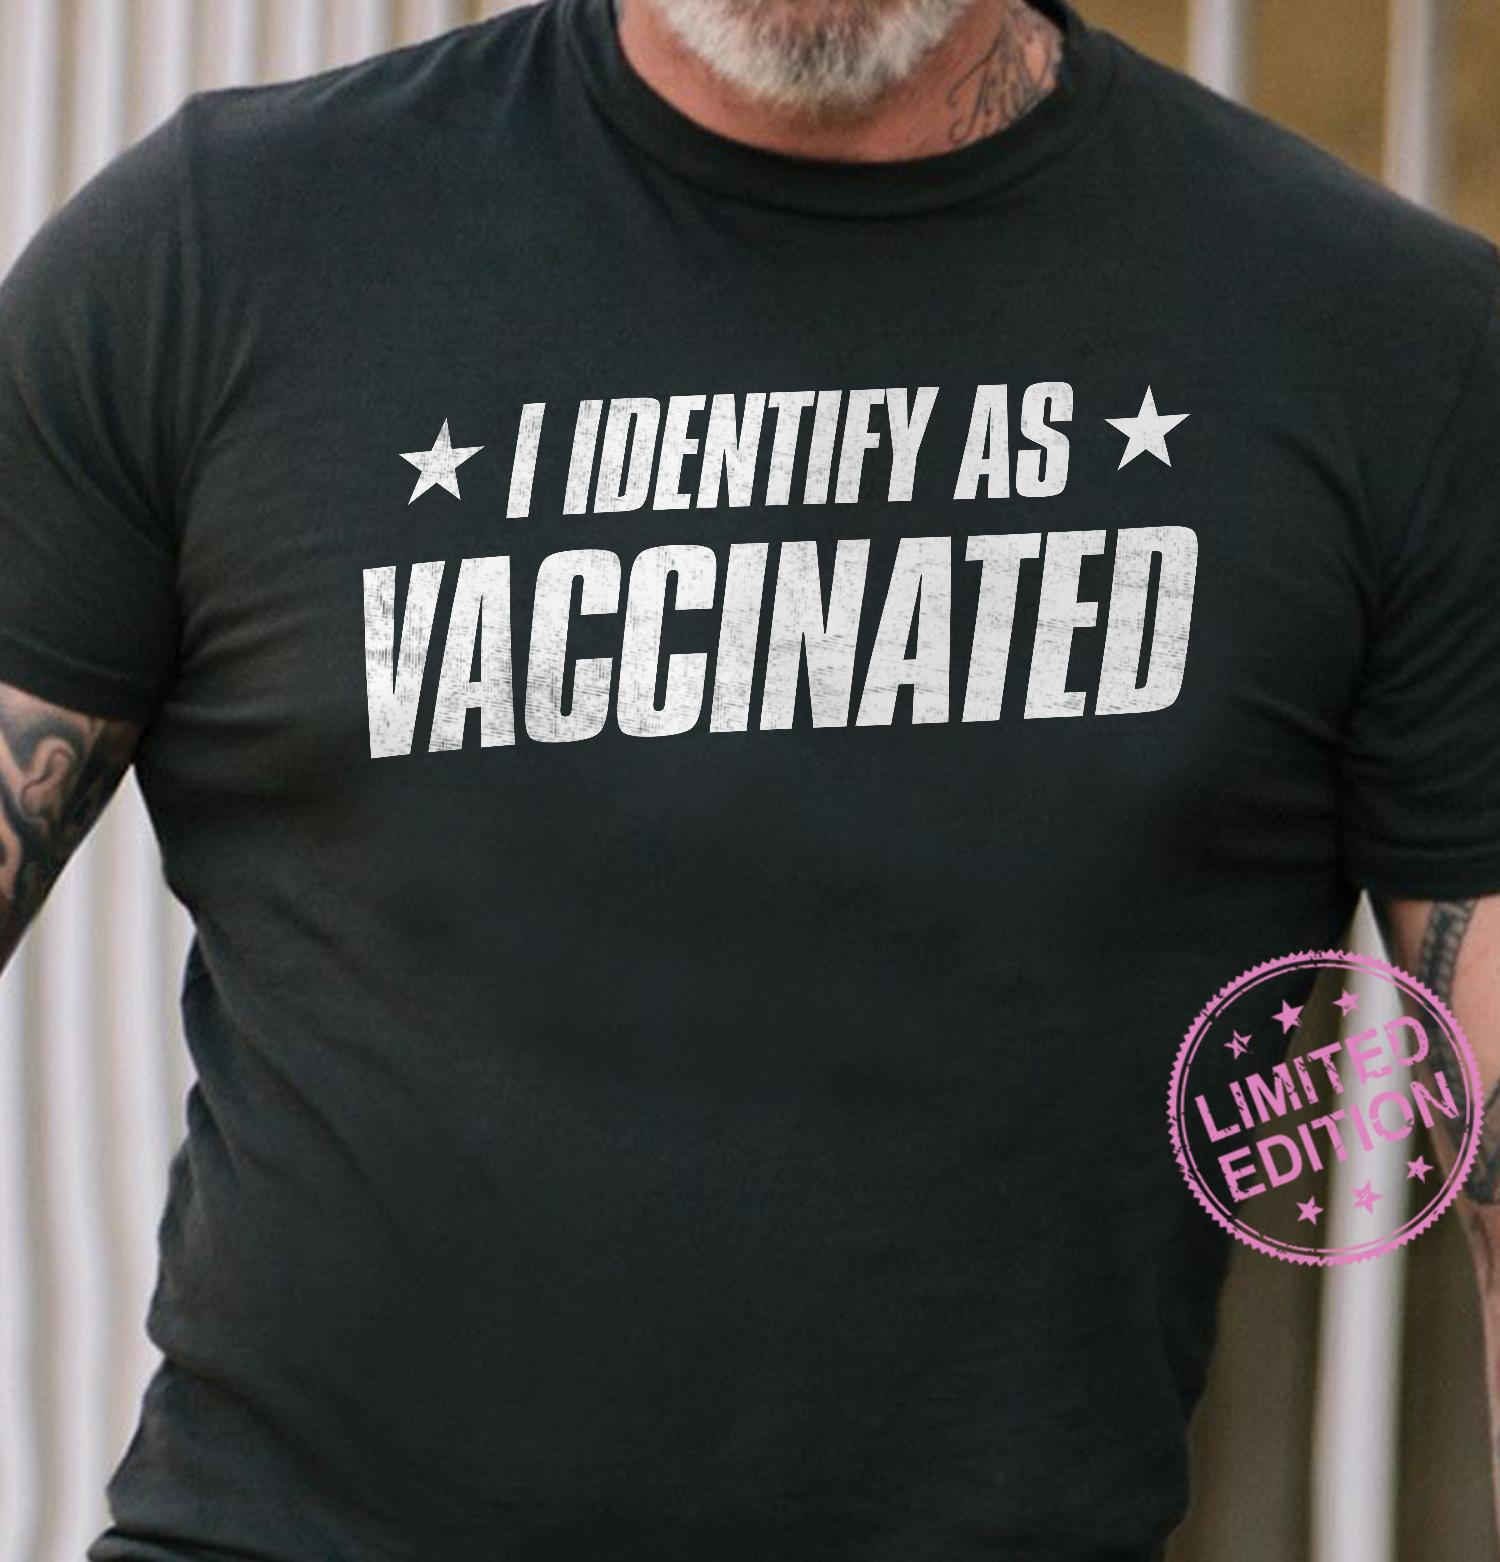 I identify as vaccinated shirt